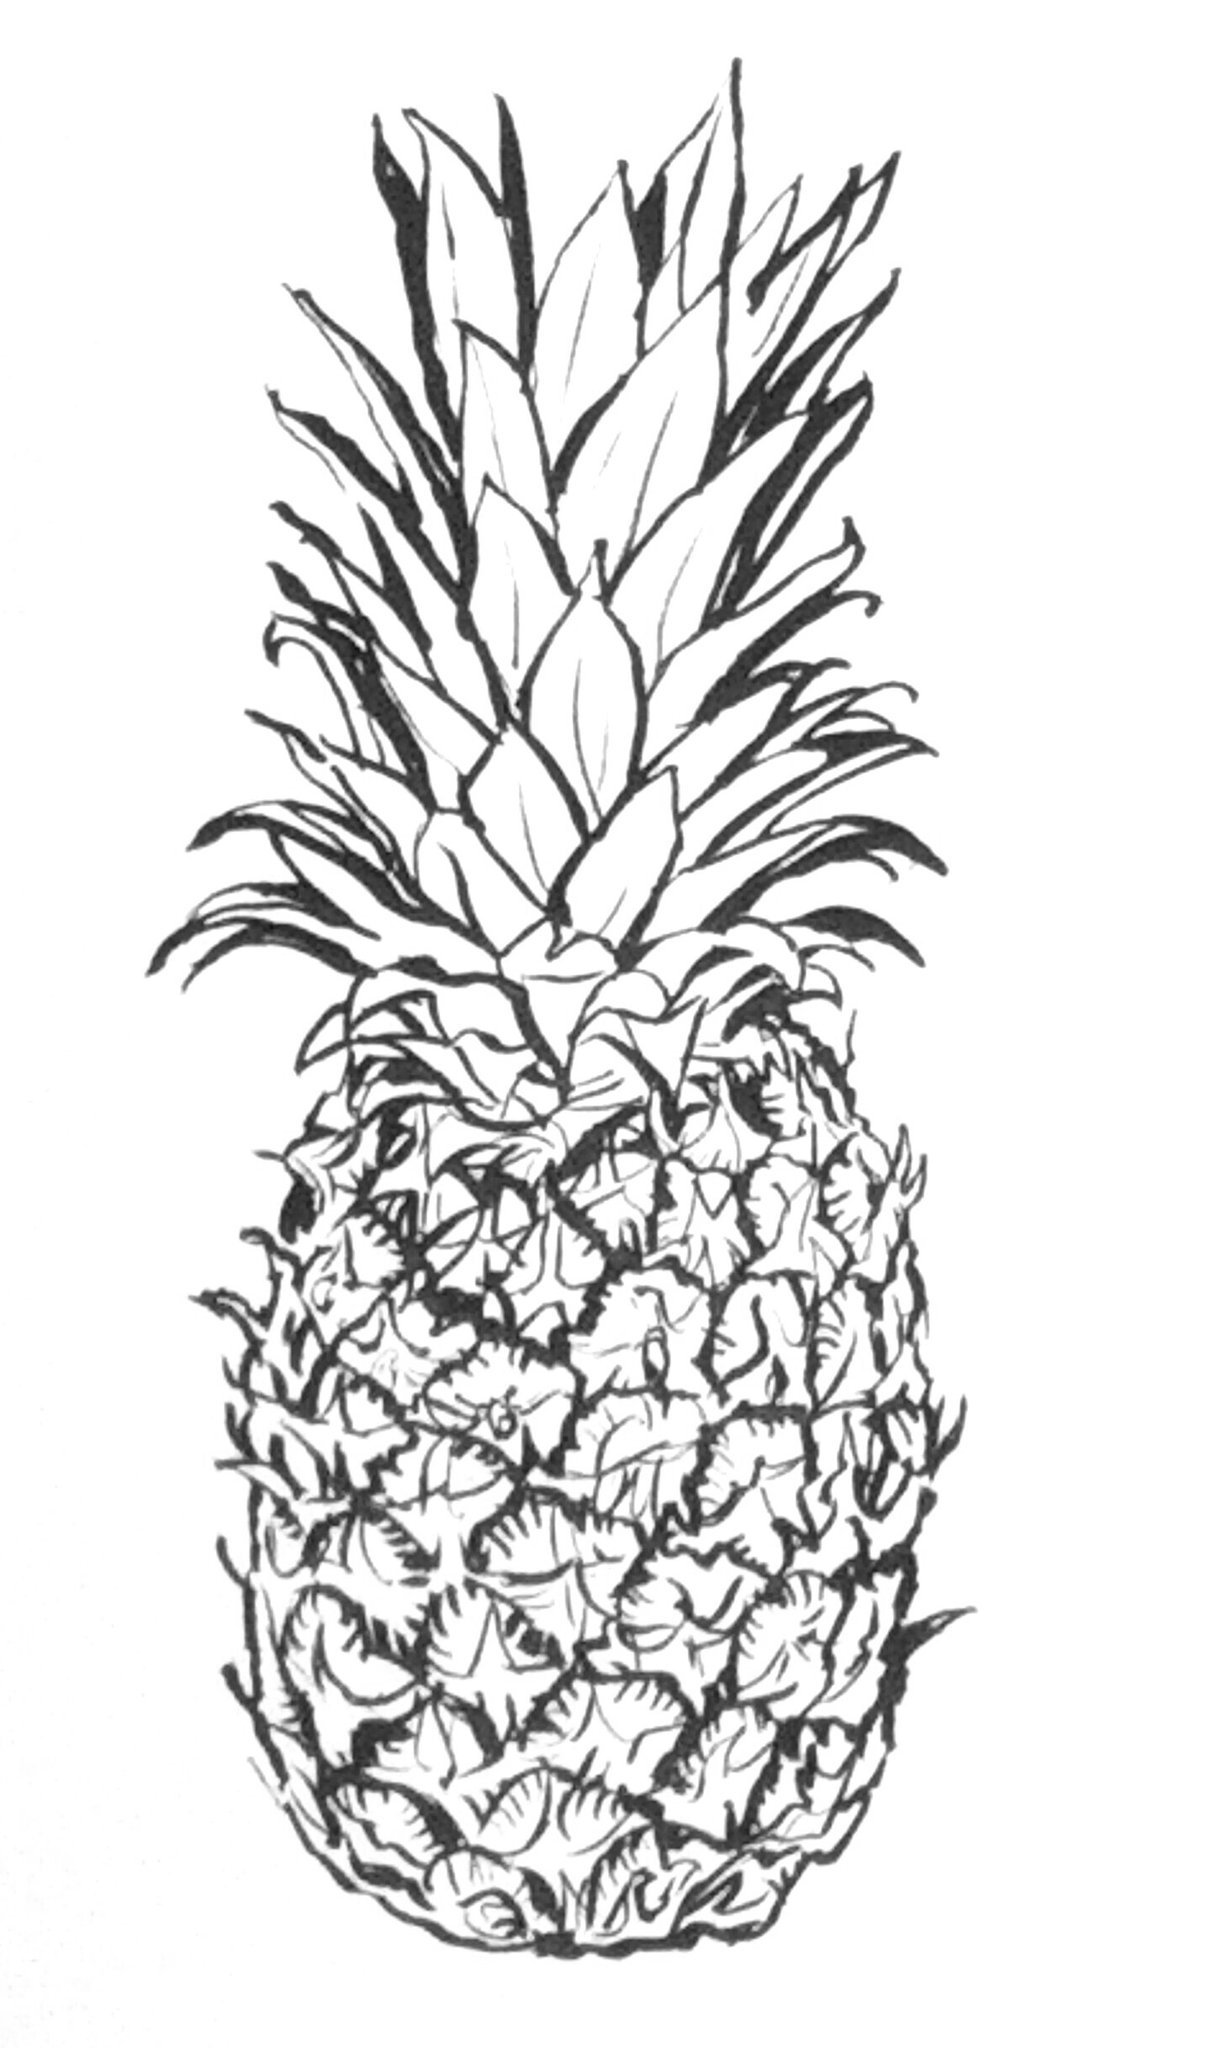 pineapple line drawing pineapple line drawing at paintingvalleycom explore drawing line pineapple